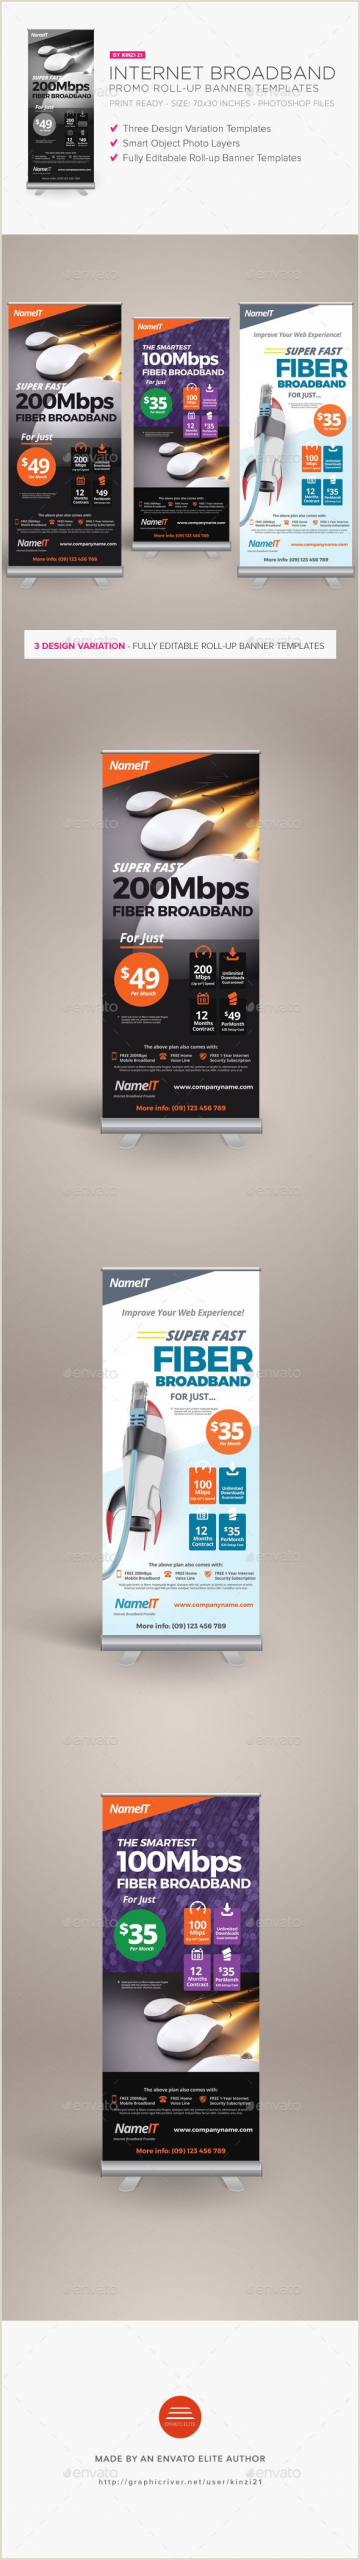 Retractable Displays Roll Ups Rollup Banner Templates Stylish Graphics